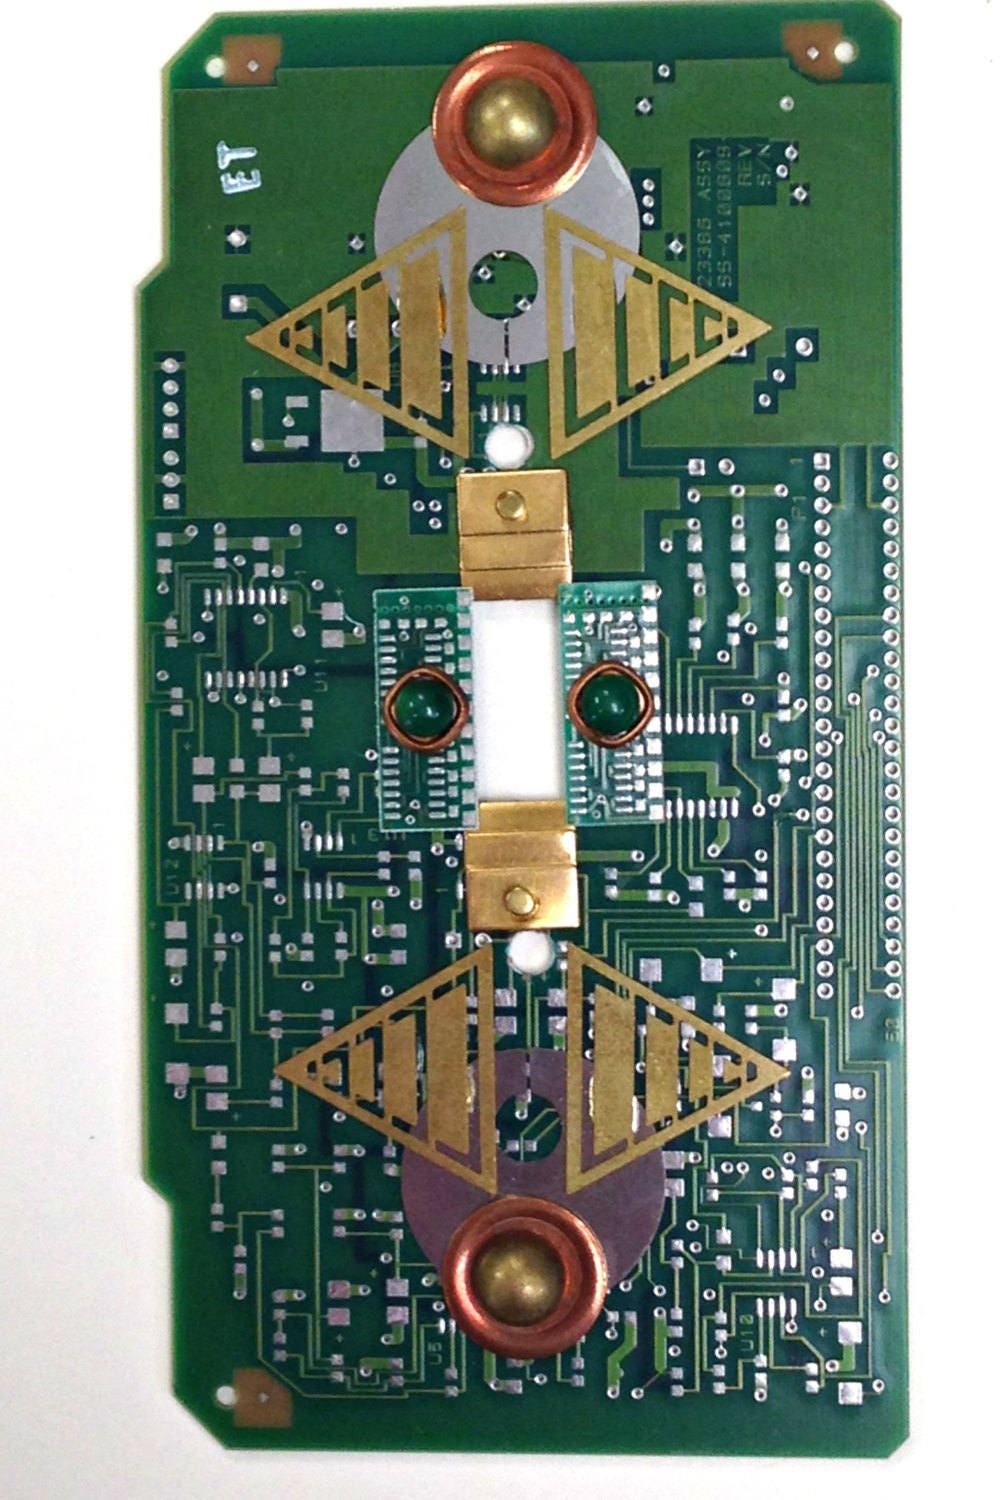 recycled circuit board light switch plate techie geekery wall etsy rh etsy com